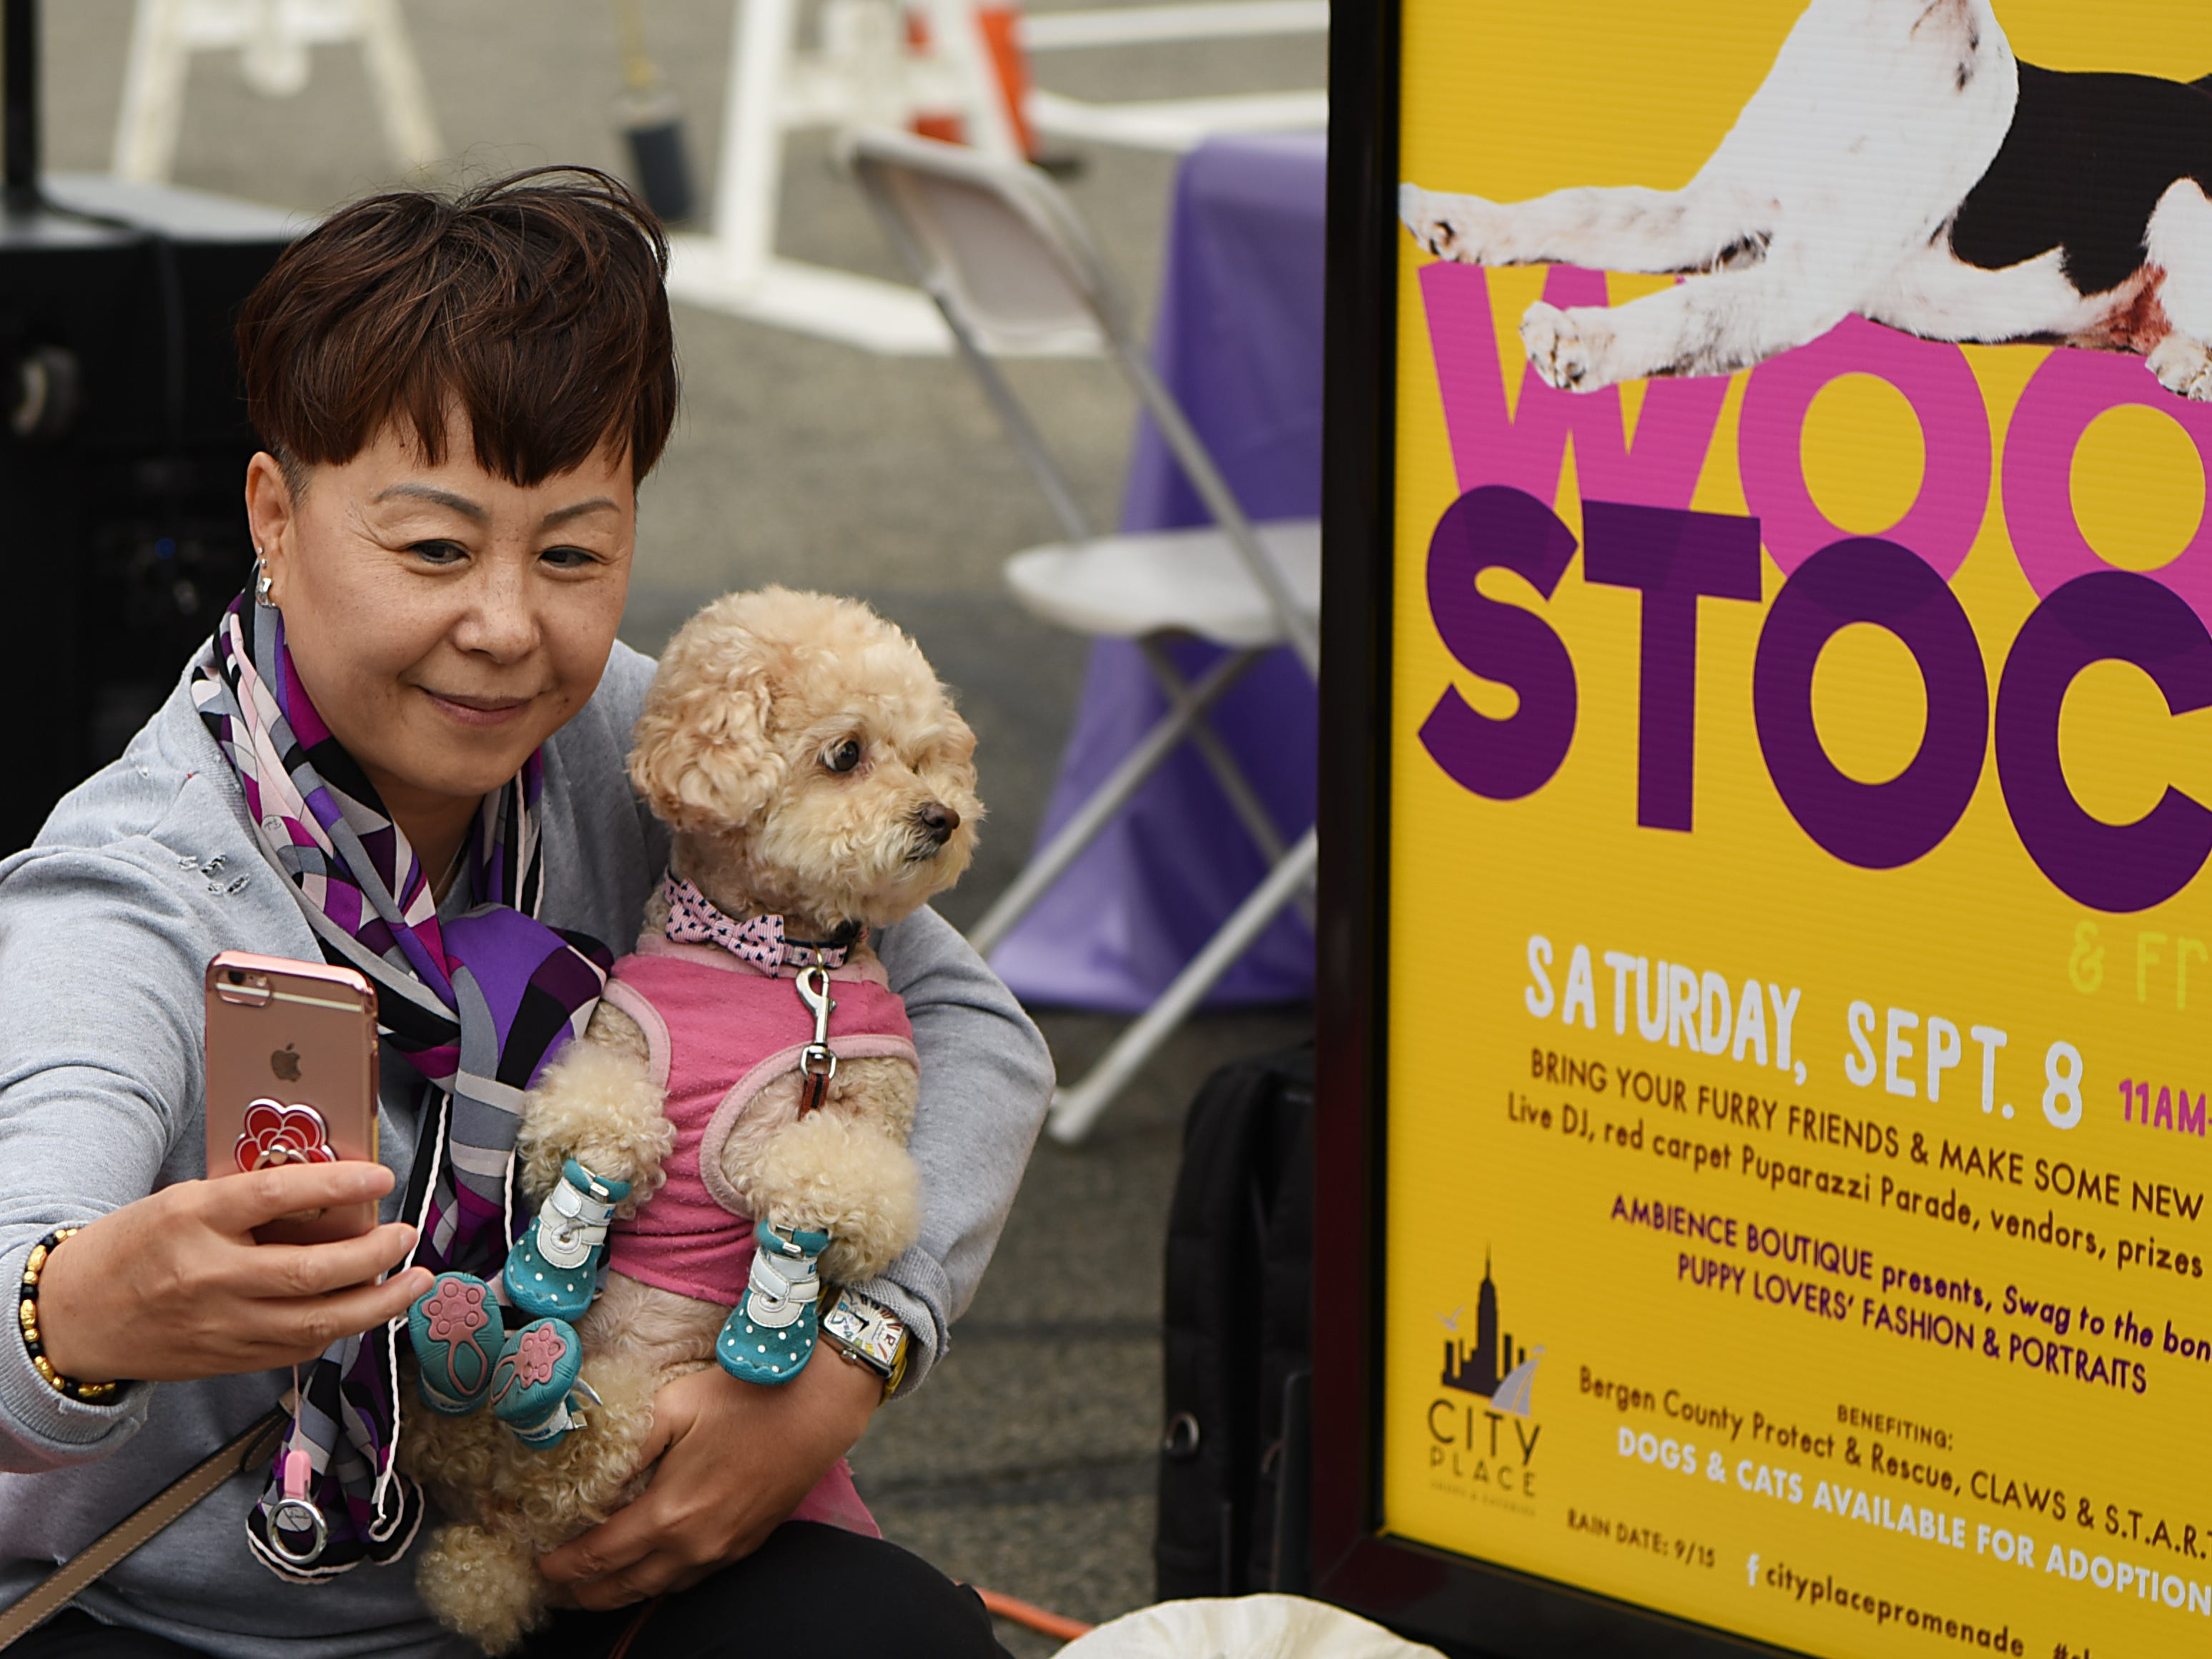 Chanel, a nine year old dog, gets a a photo taken in front of the Woofstock sign. Woofstock 2018, a benefit for Bergen County animal rescue organizations, at City Place in Edgewater on Saturday September 8, 2018.